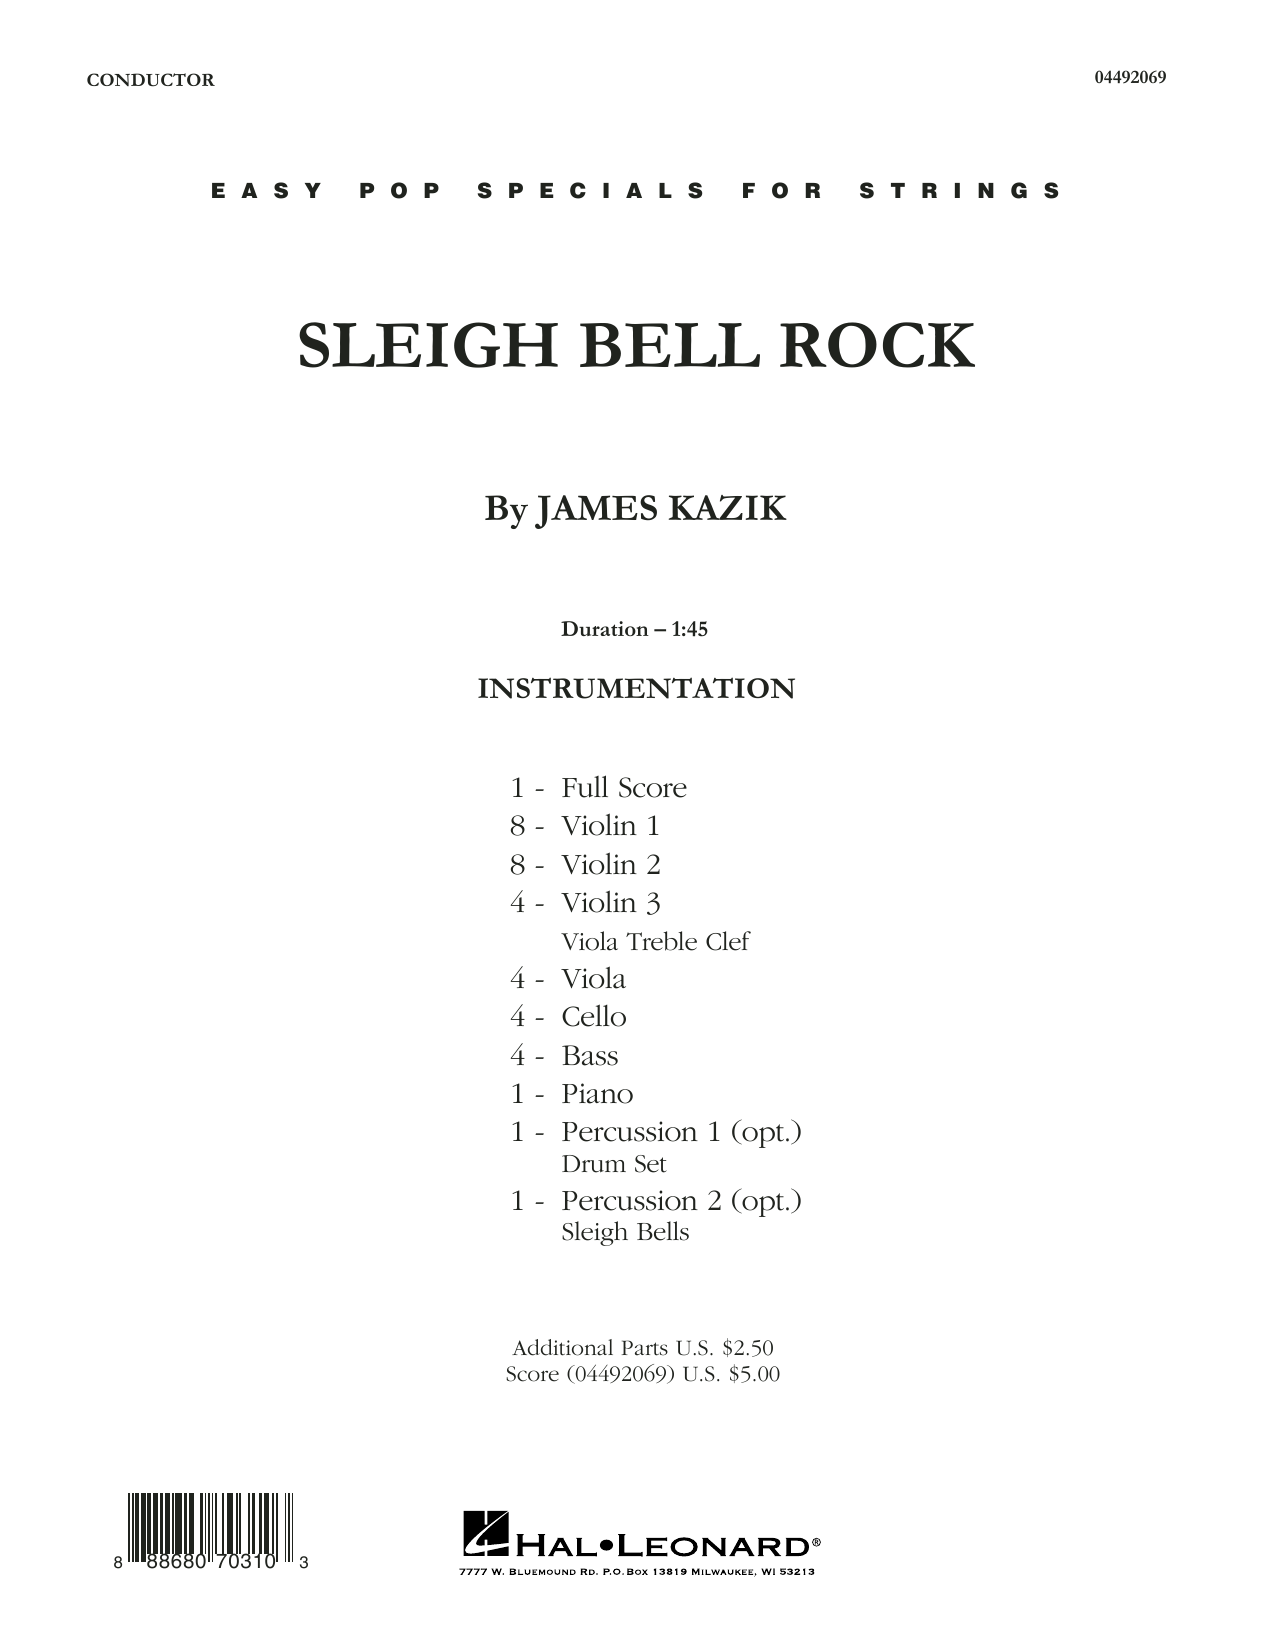 James Kazik Sleigh Bell Rock - Conductor Score (Full Score) sheet music notes and chords. Download Printable PDF.